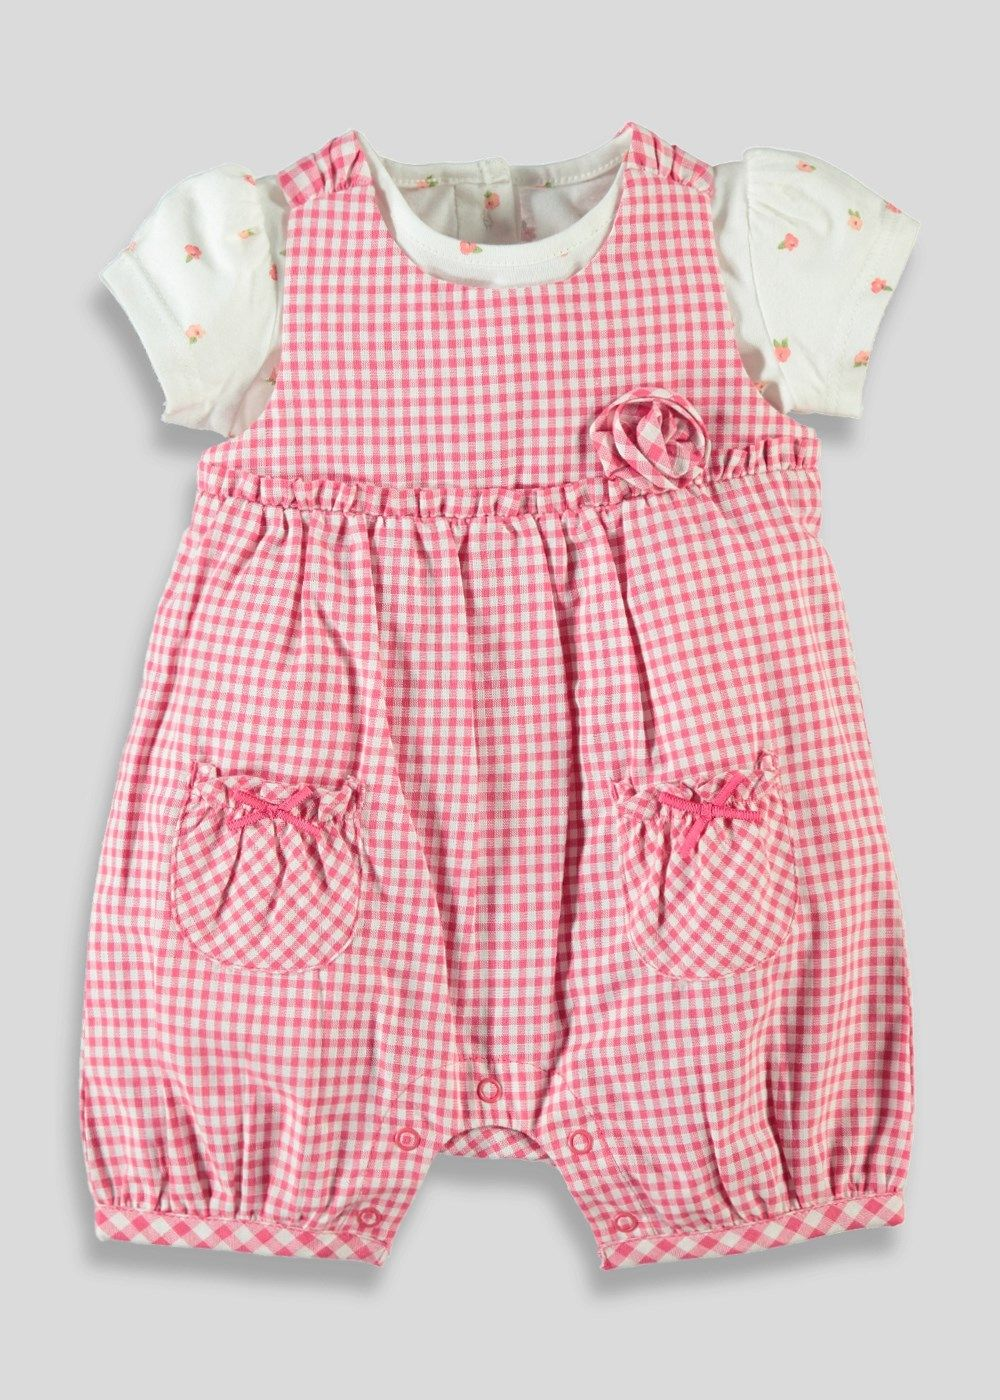 los angeles classic style stable quality Girls | Baby Bits | Girl outfits, Baby girl patterns, Kids ...